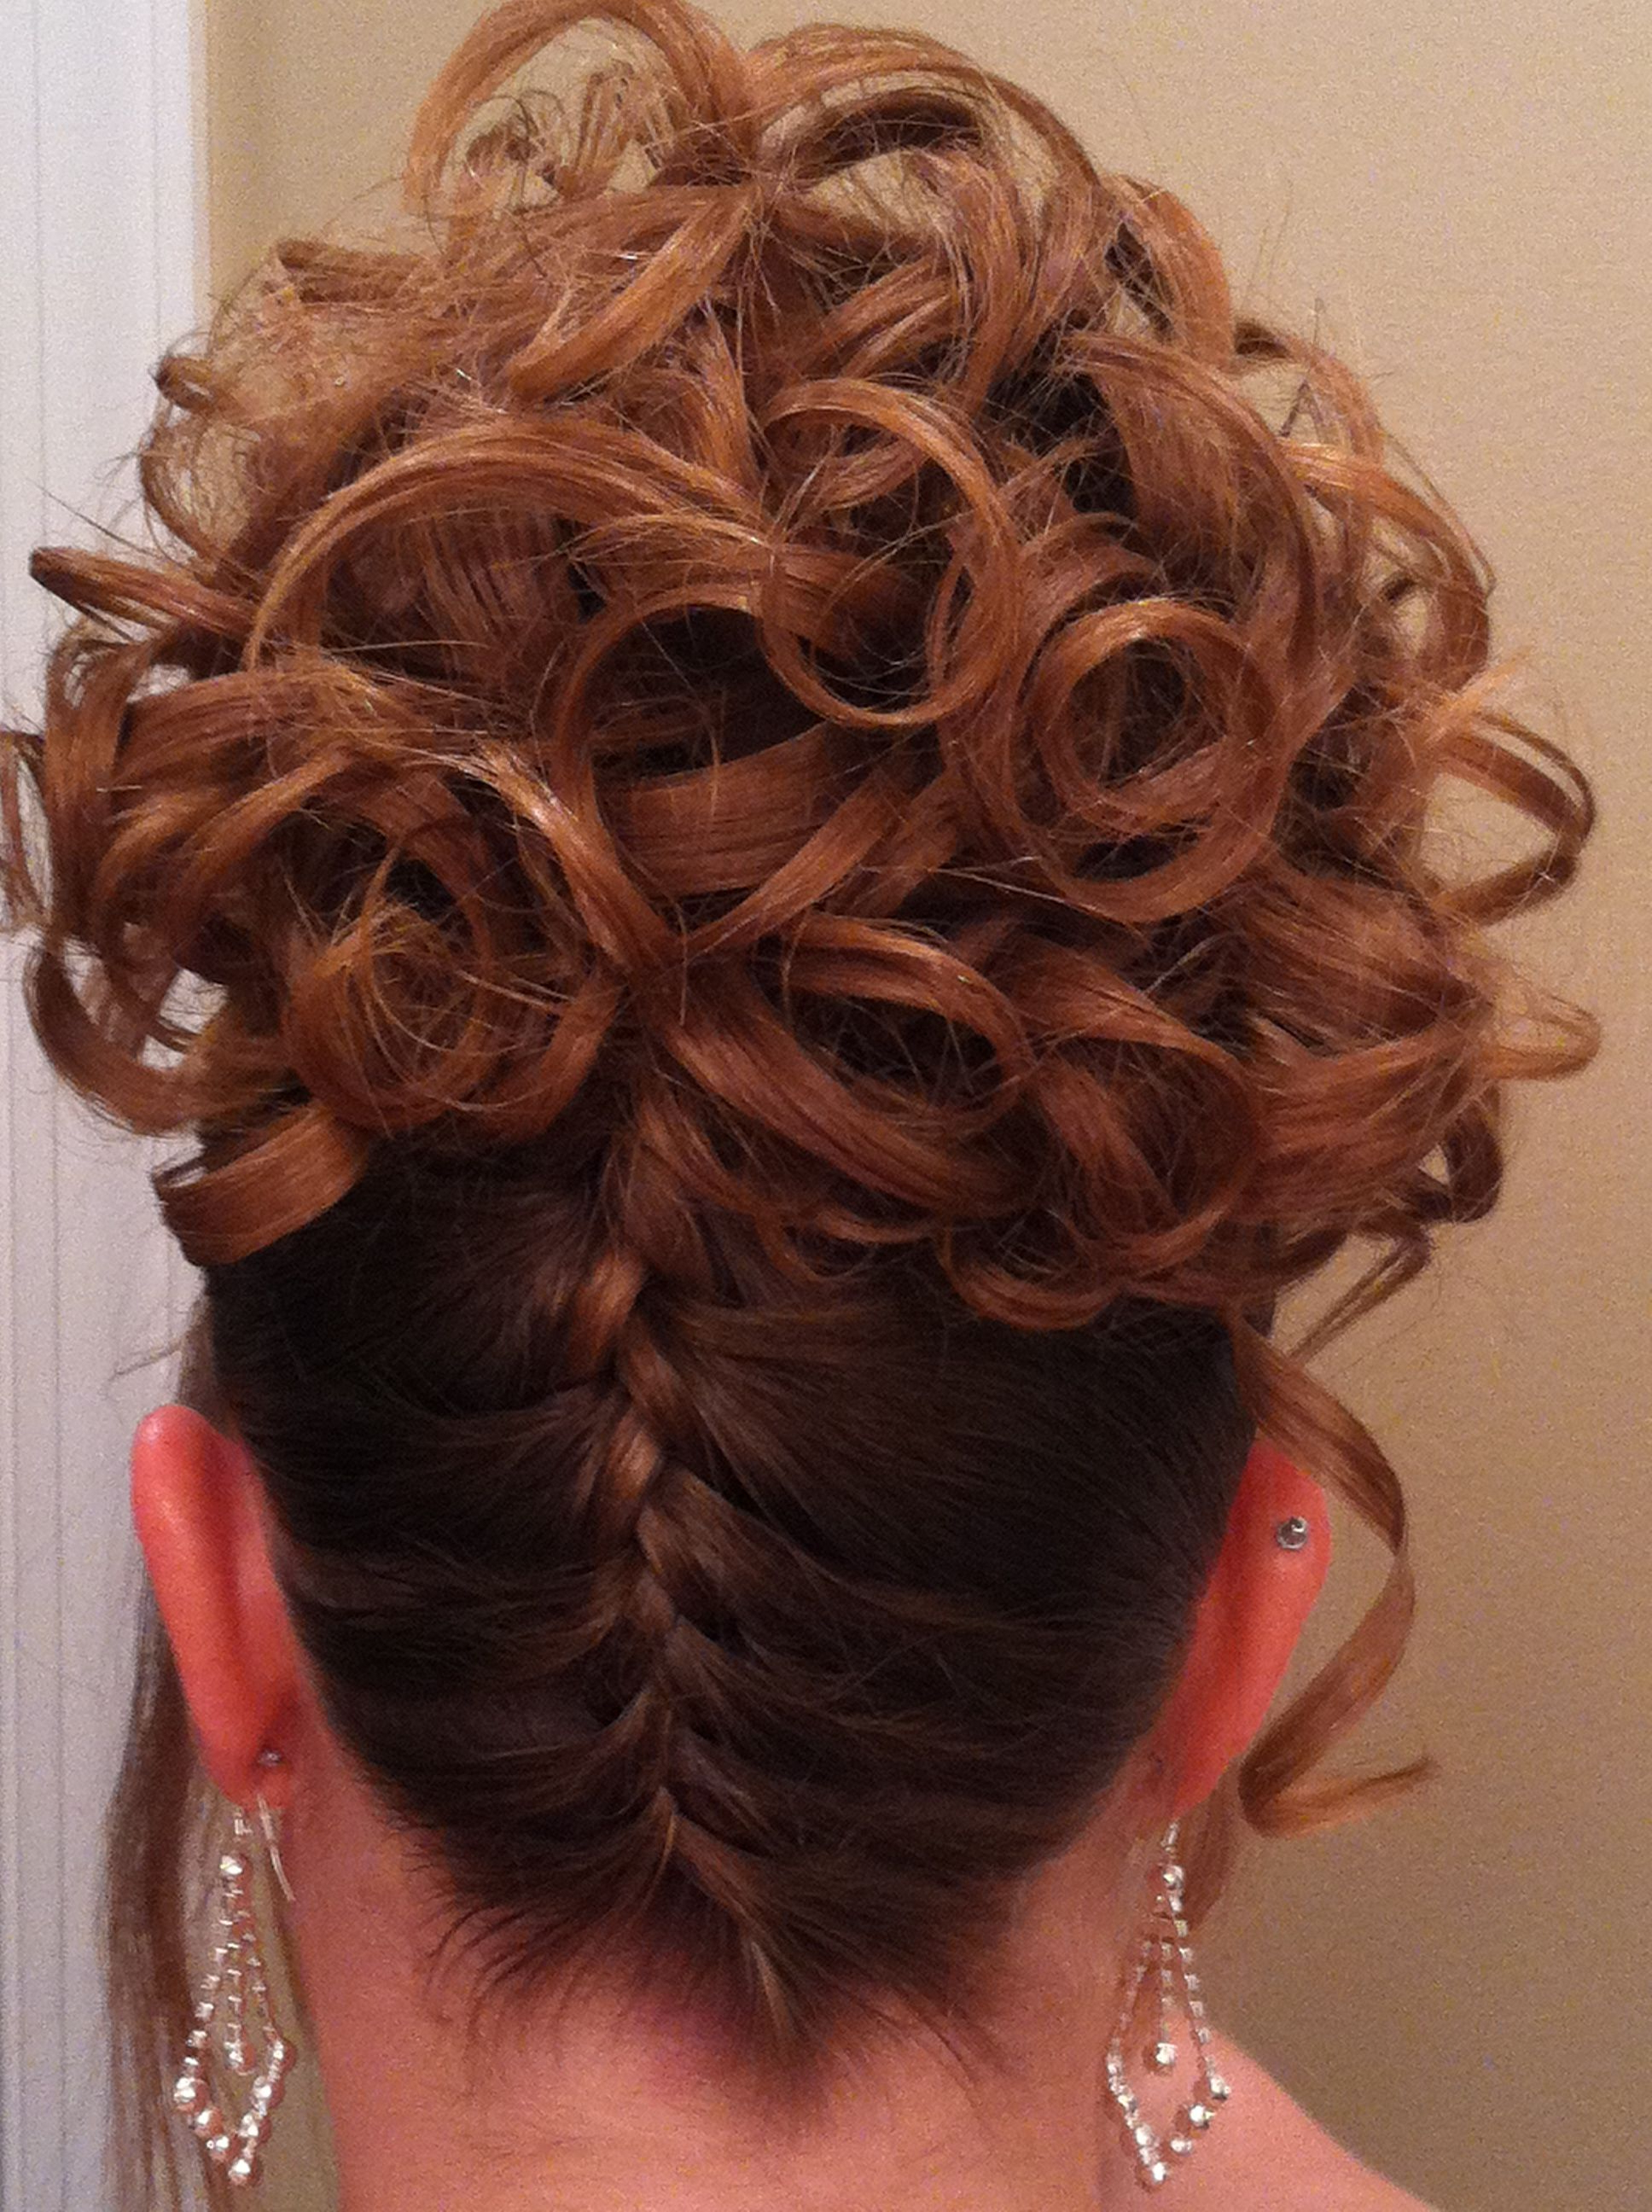 Hair, Hair Regarding Well Known Upside Down Braid And Bun Prom Hairstyles (View 17 of 20)